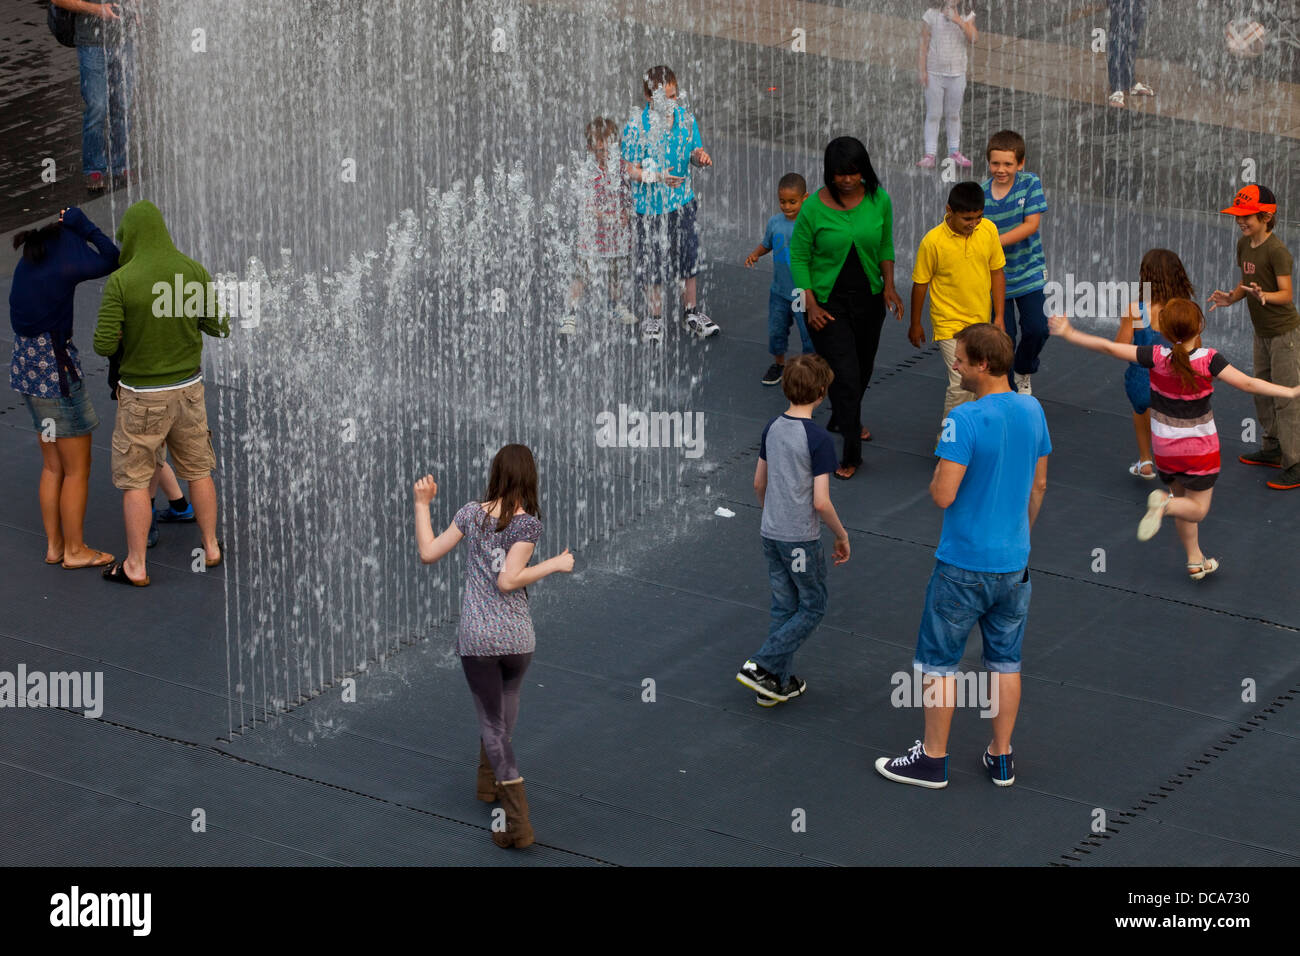 People Playing In The Appearing Rooms, Interactive Water Fountains, The South Bank, London, England - Stock Image